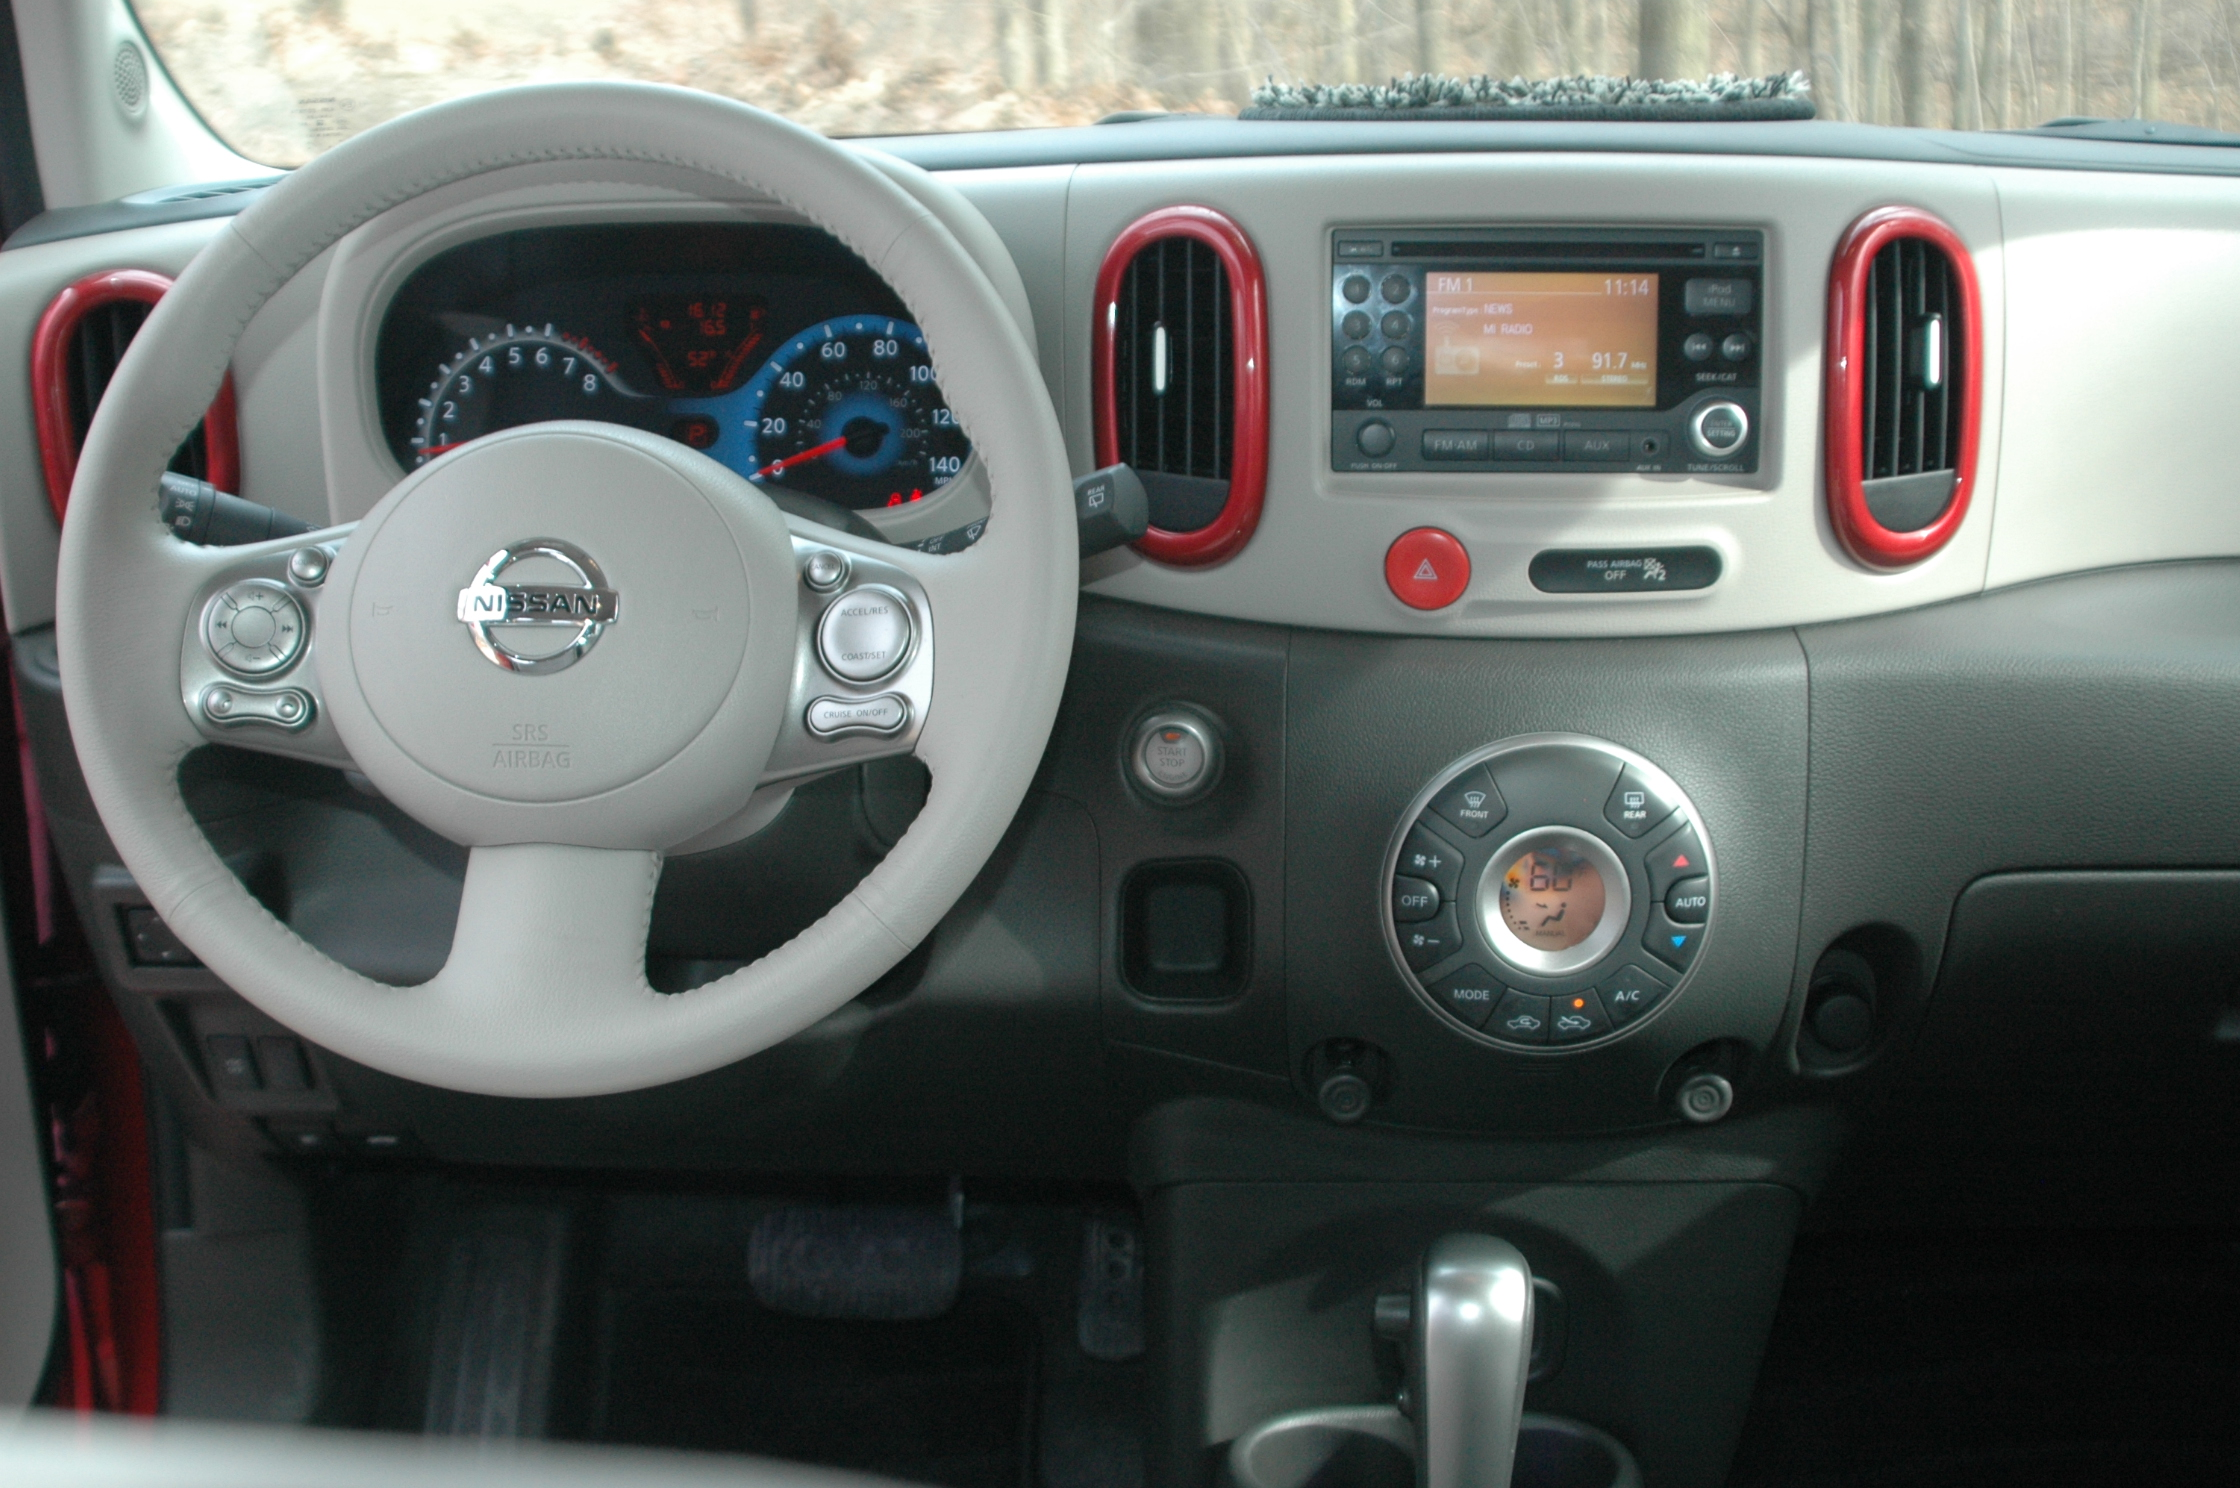 2010 nissan cube review photo select to view enlarged photo vanachro Choice Image